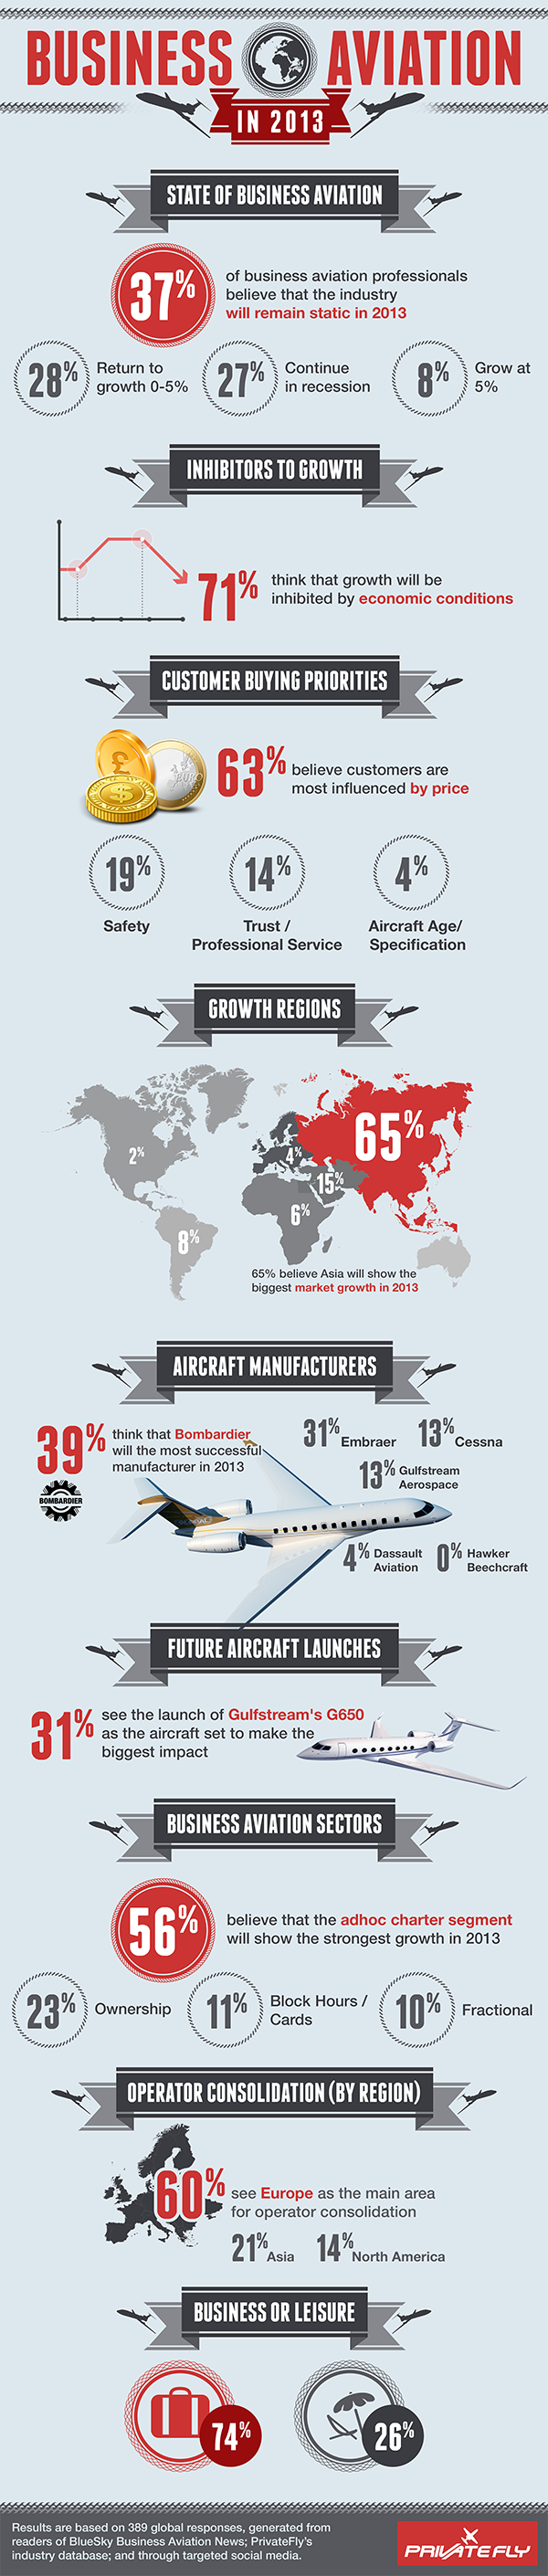 1. Business Aviation in 2013